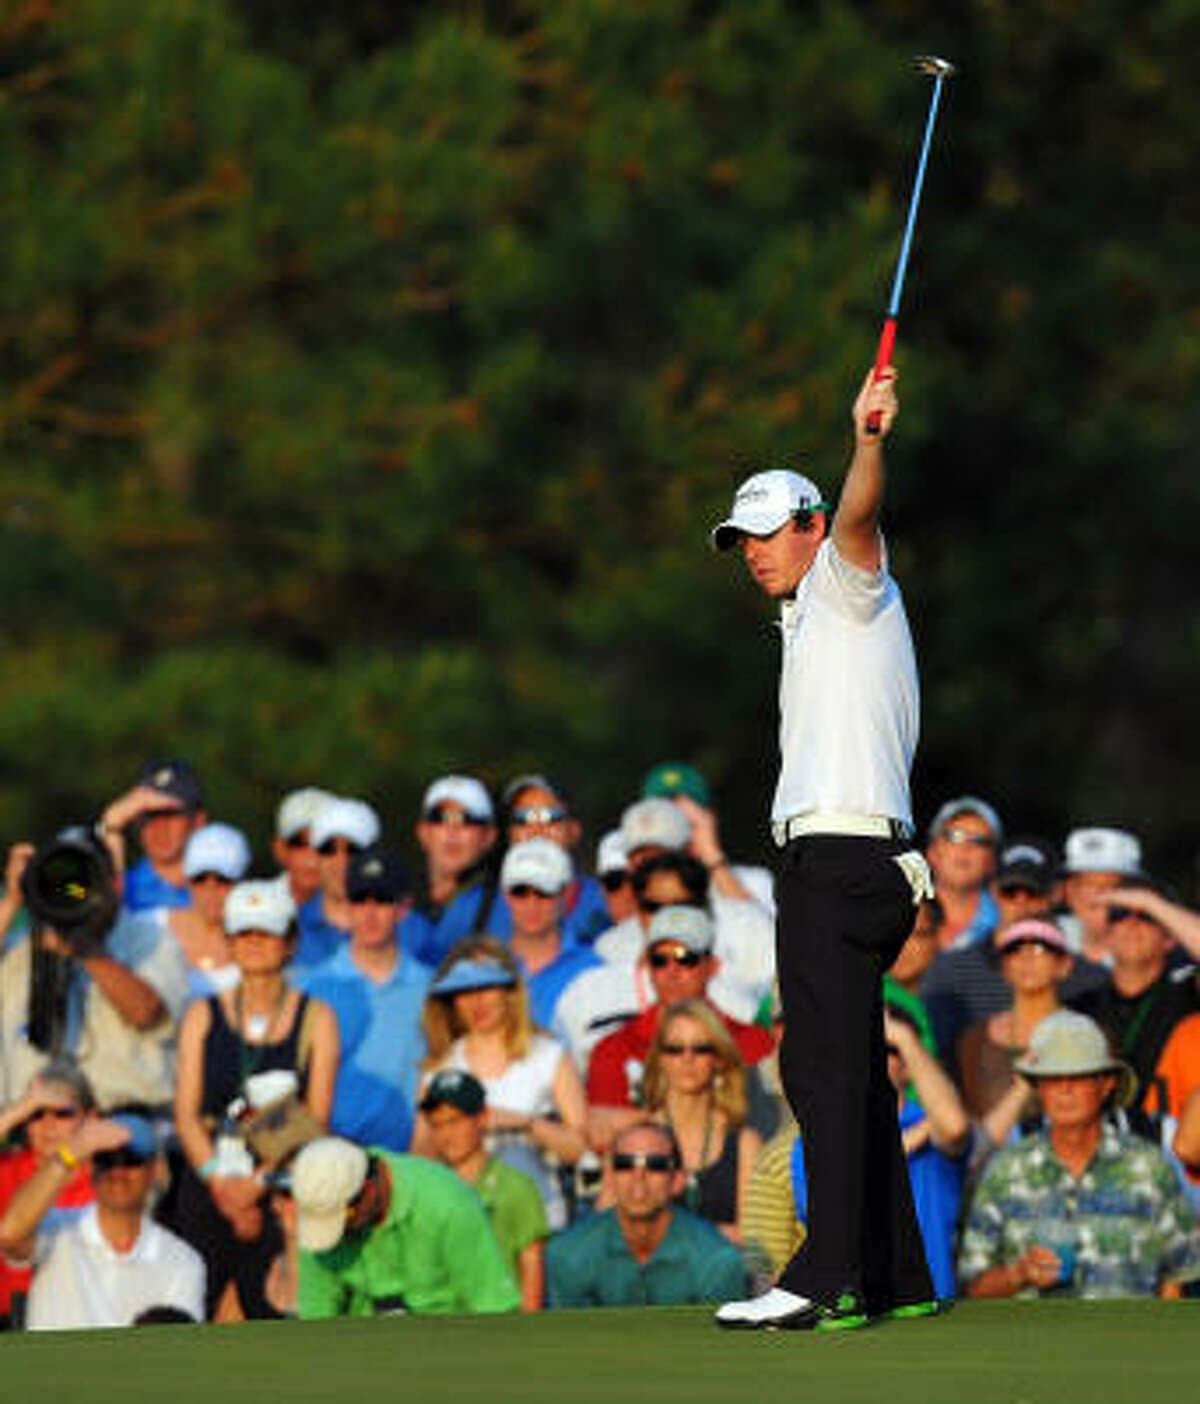 Rory McIlroy reacts after sinking a long birdie putt on the 17th hole during the third round of the 75th Masters at Augusta National Golf Club on Saturday. McIlroy heads into the final round with a four-shot lead.